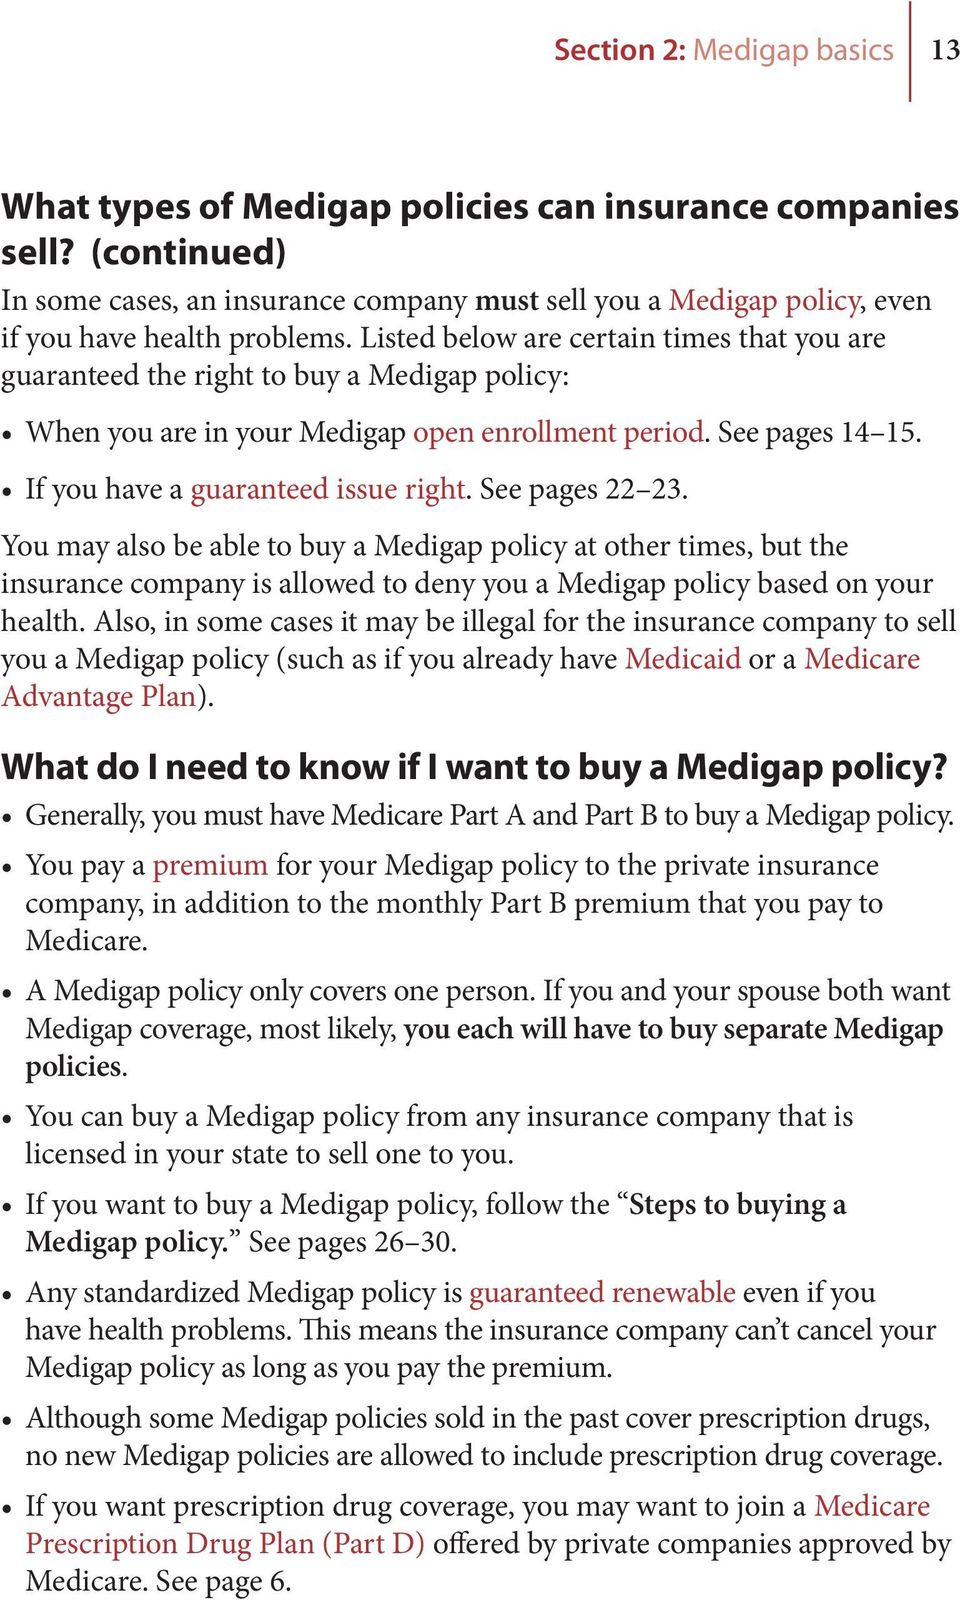 Listed below are certain times that you are guaranteed the right to buy a Medigap policy: When you are in your Medigap open enrollment period. See pages 14 15. If you have a guaranteed issue right.